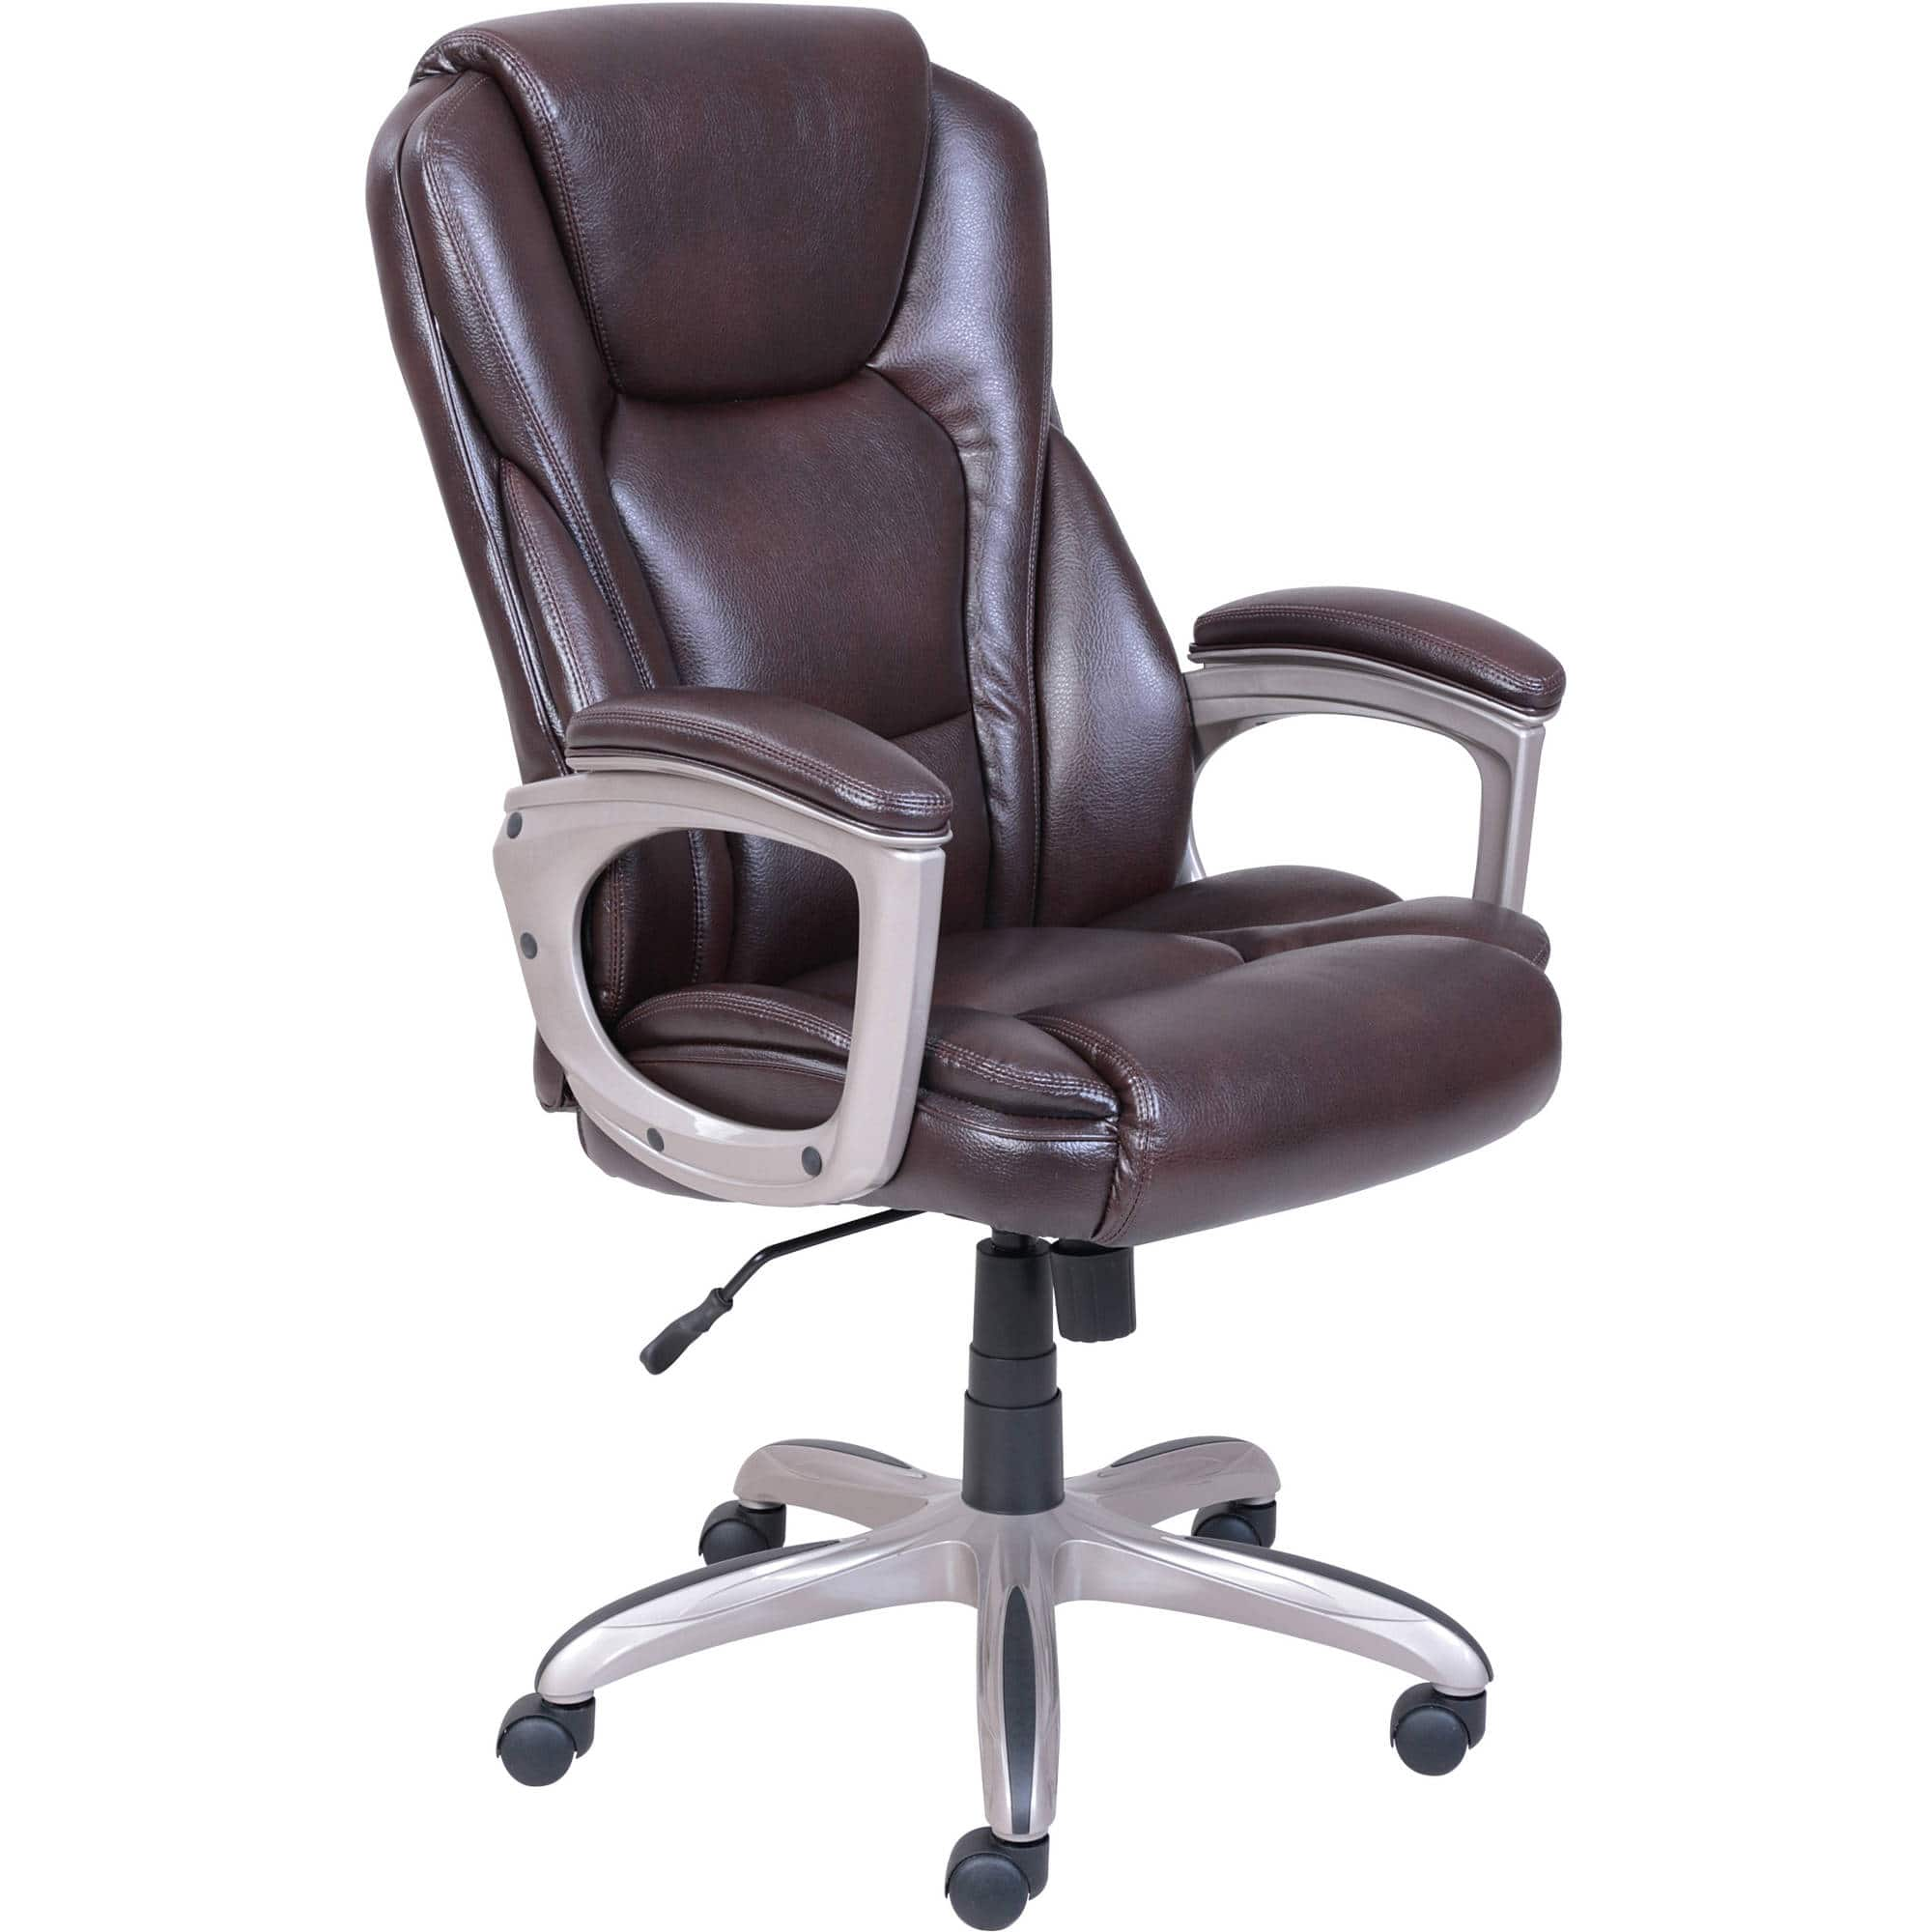 Tall Office Chair Serta Big And Tall Commercial Office Chair W Memory Foam